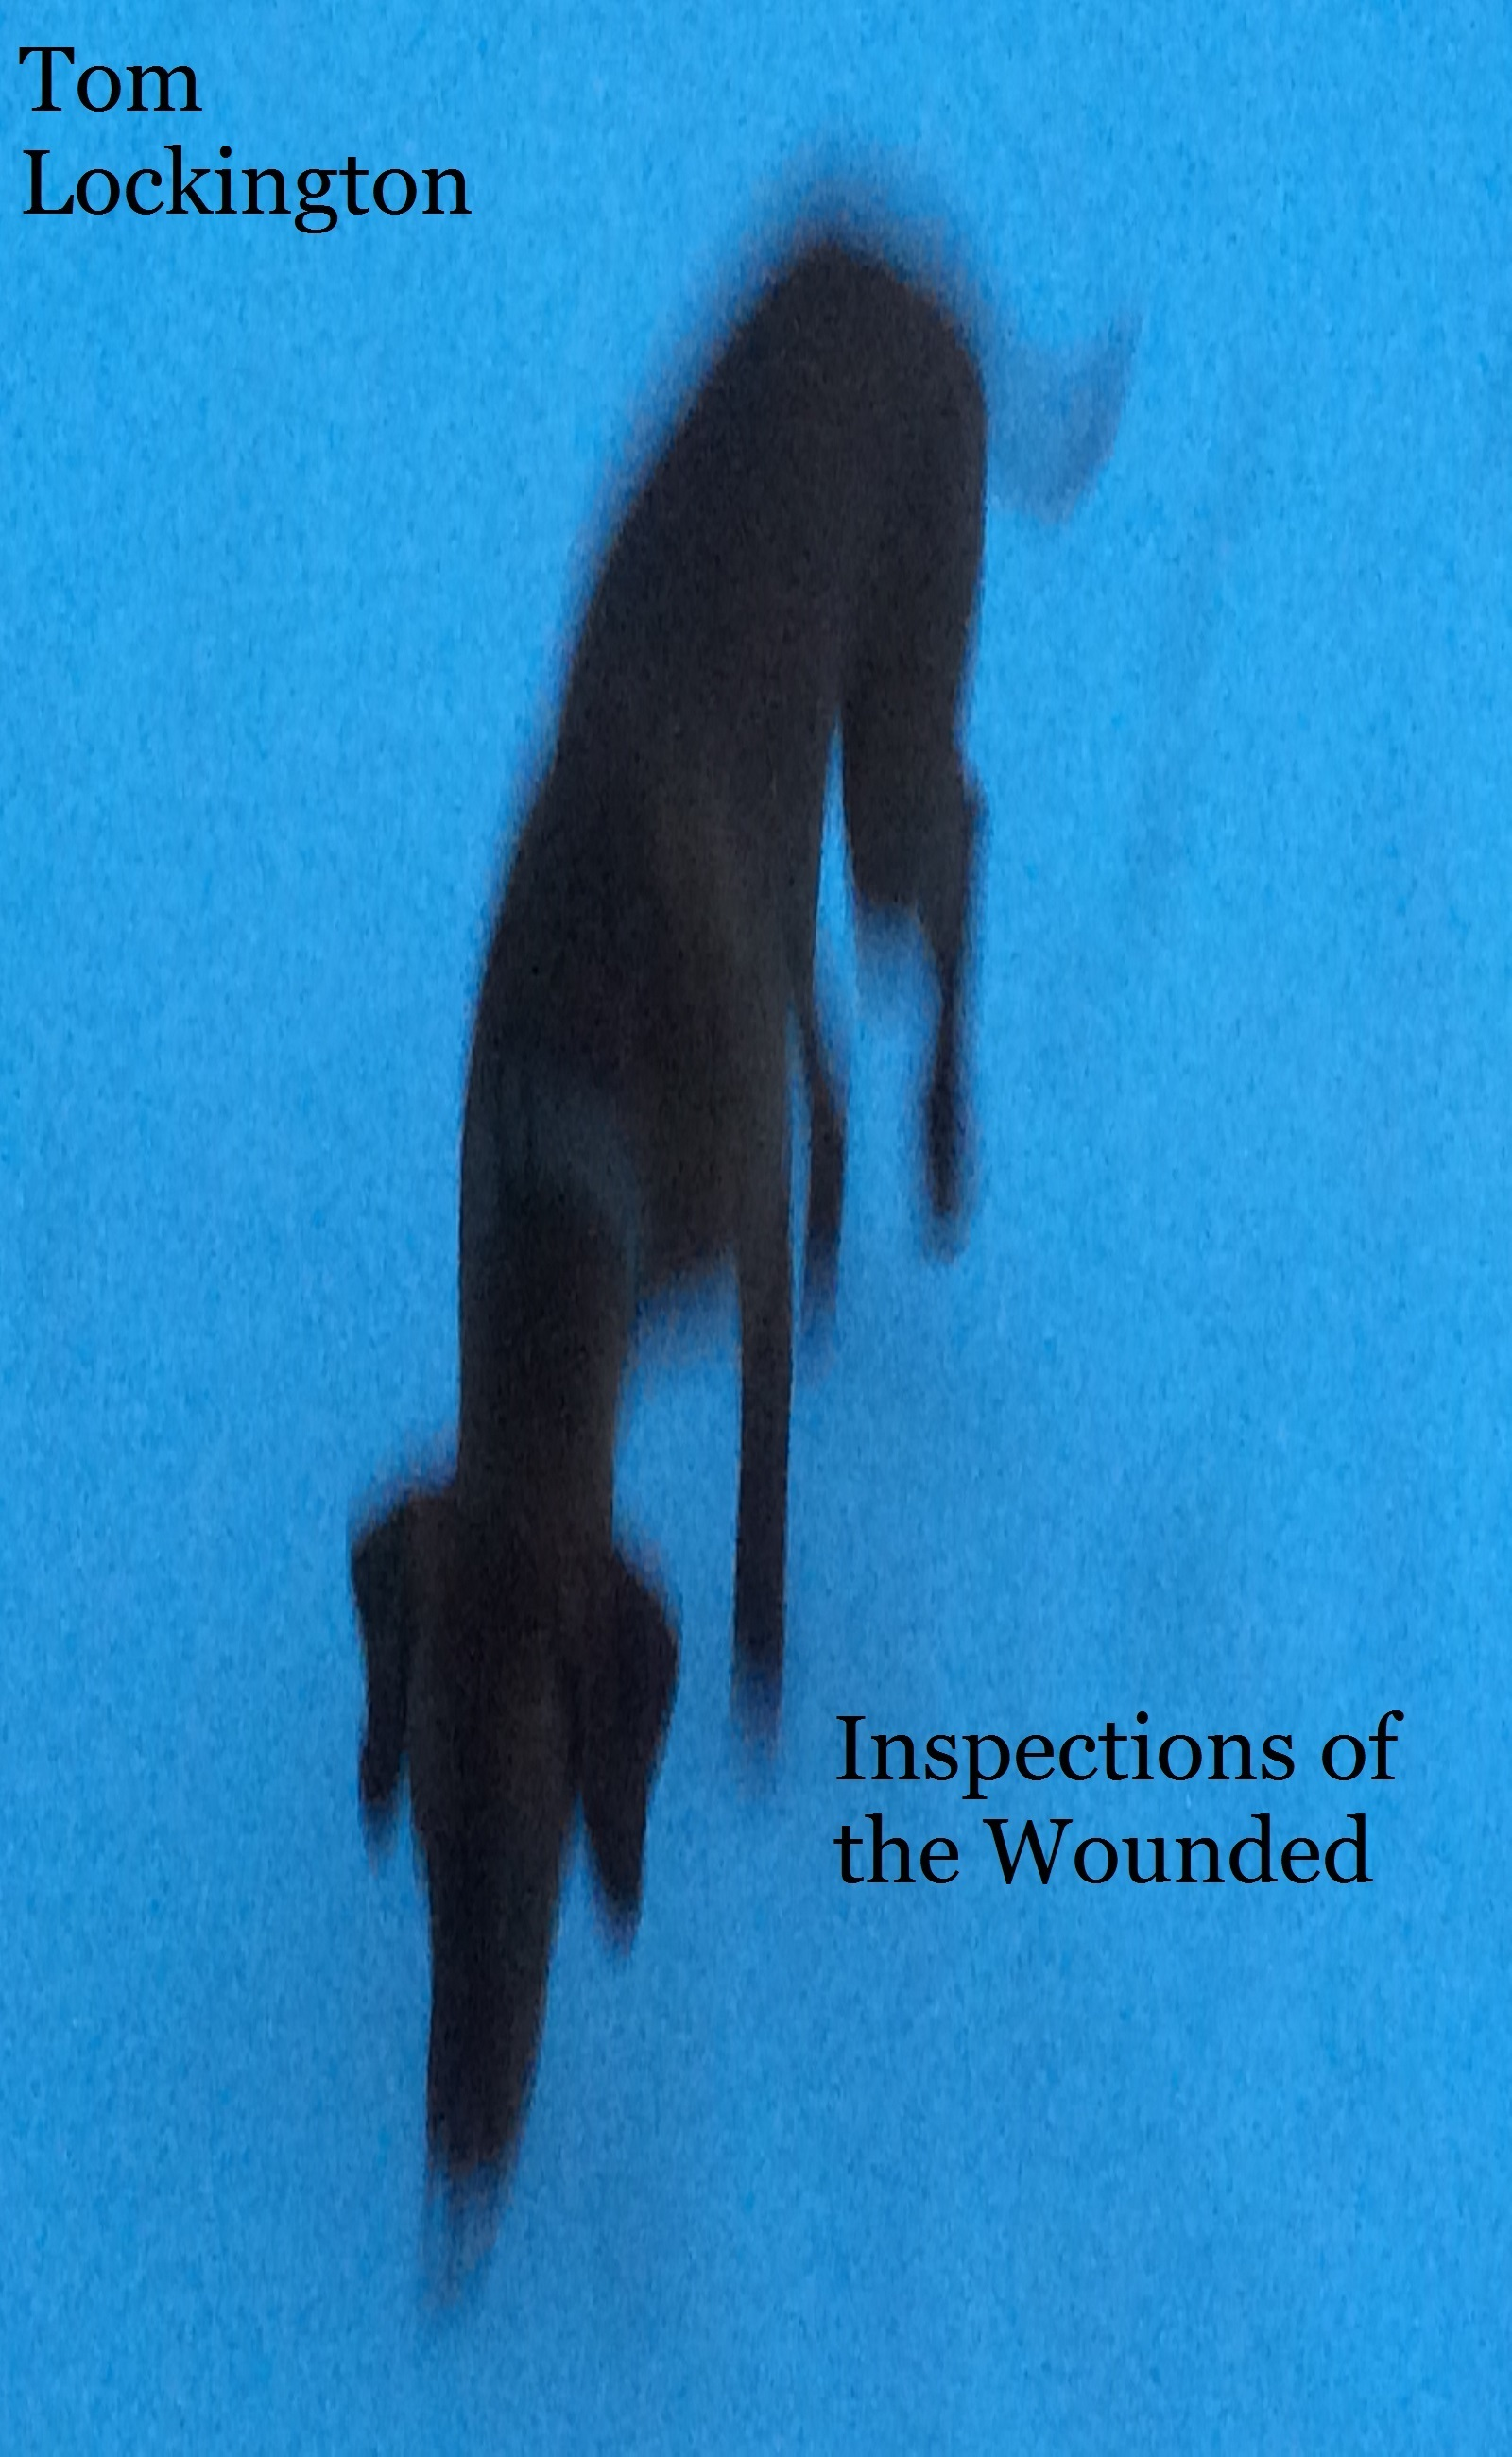 Inspections of the Wounded Tom Lockington